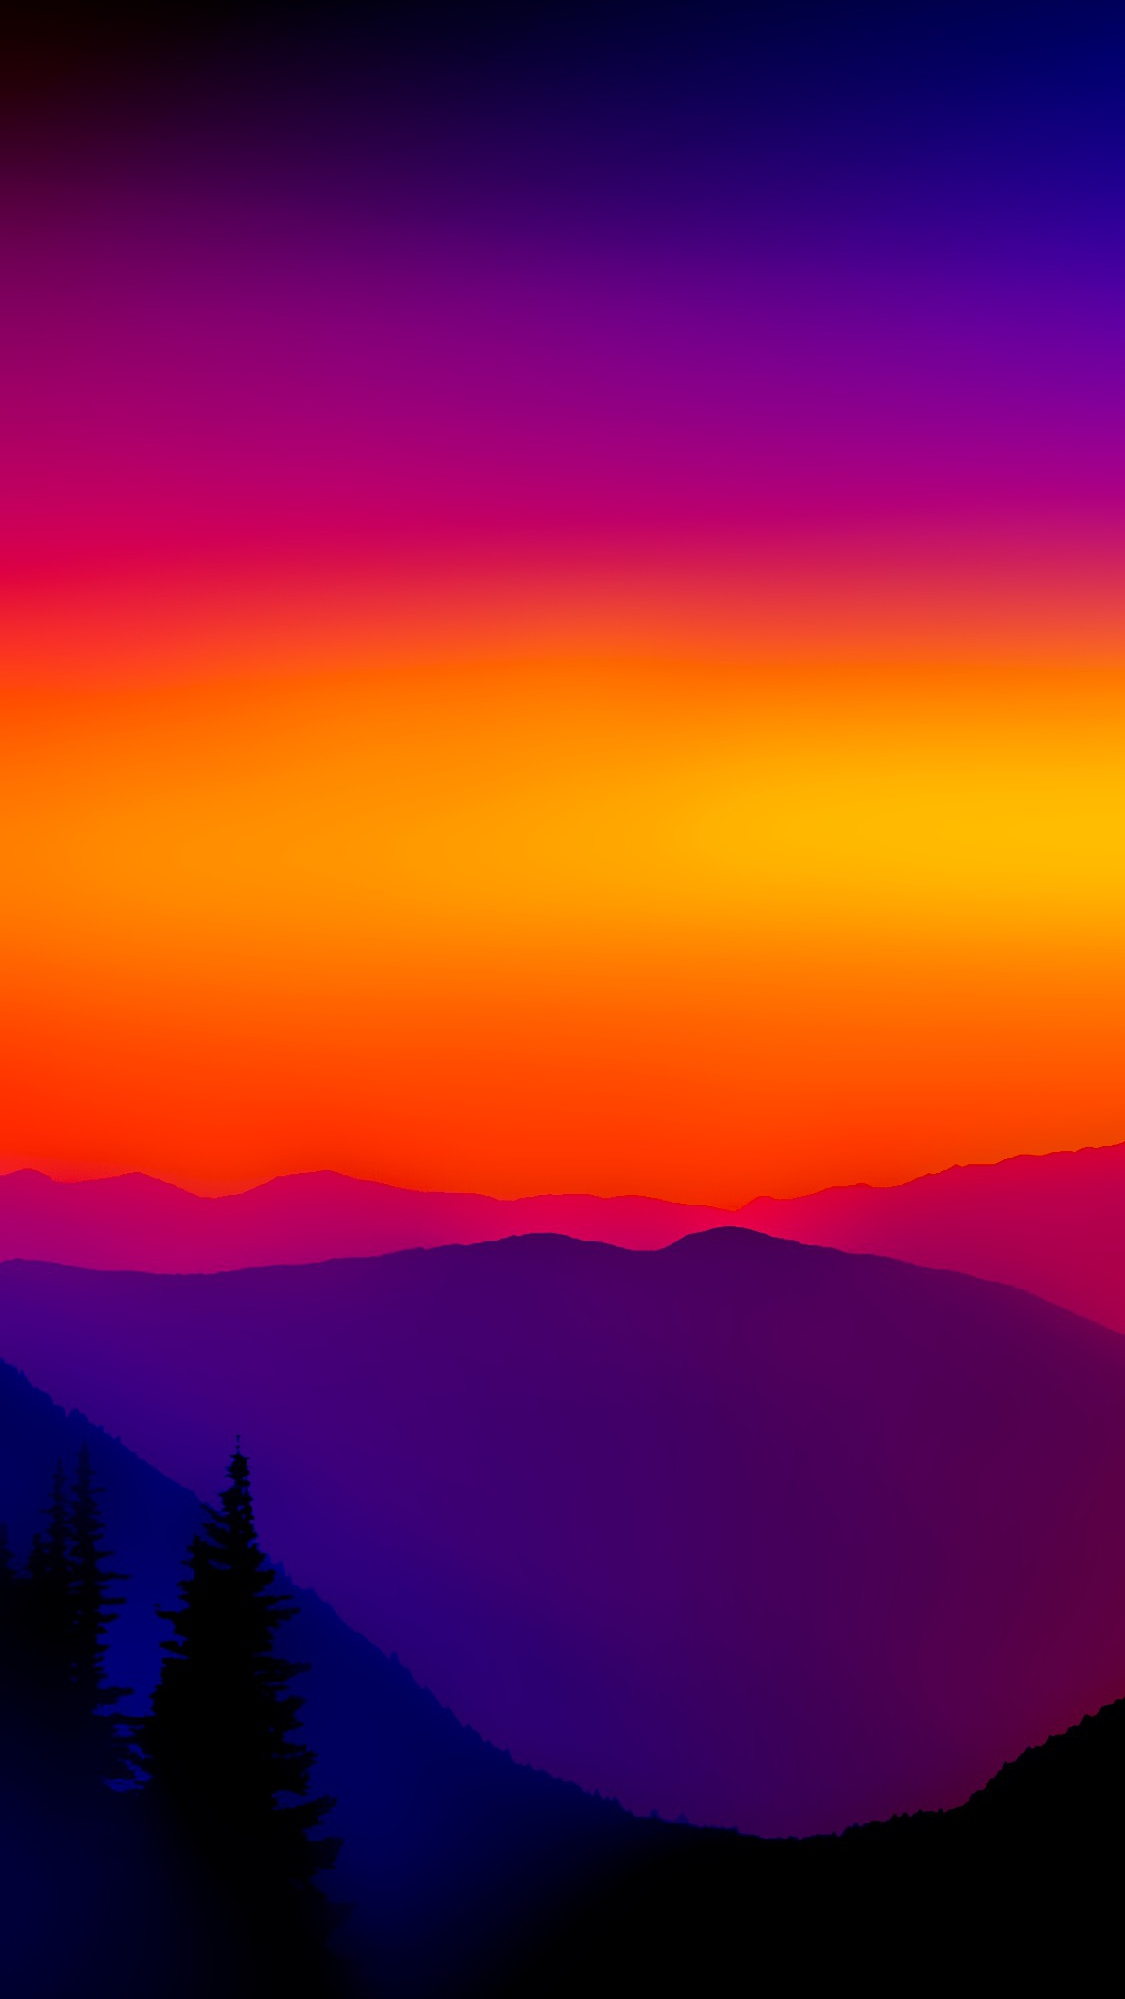 Wallpaper Cute For Phone Colorful Sunset Mountains Mist Iphone Wallpaper